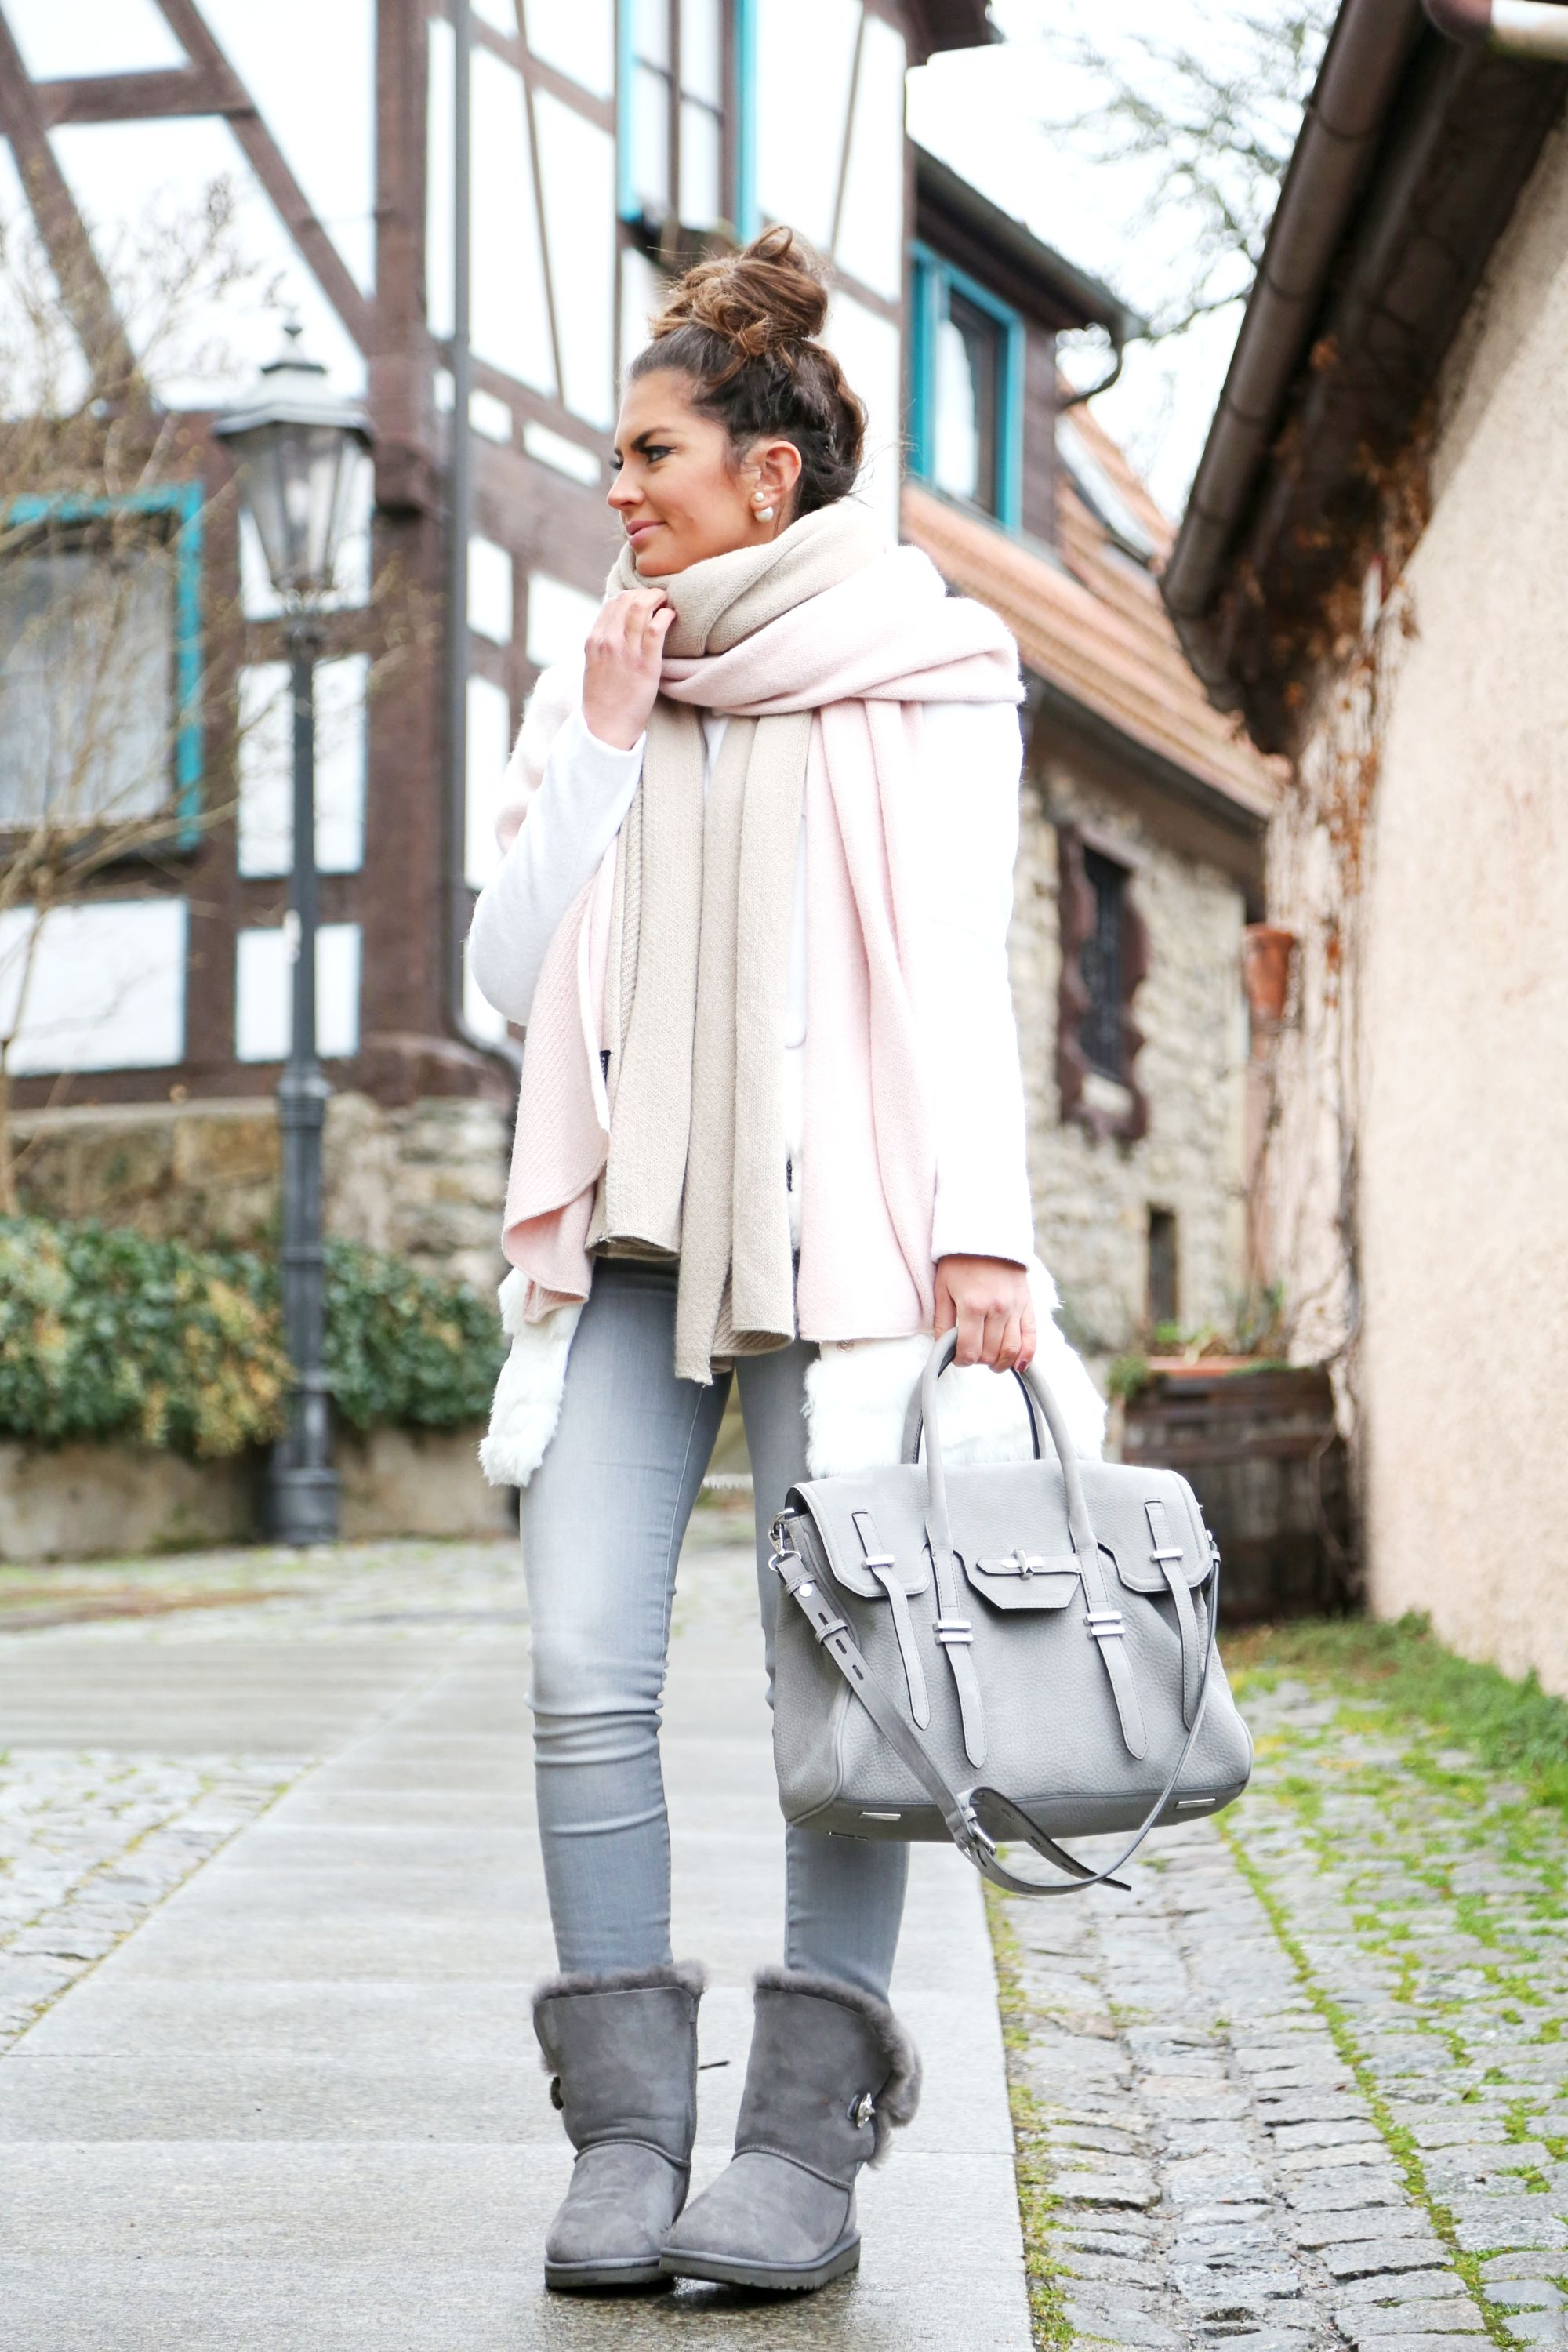 Cozy And Warm With Ugg Boots Ugg Boots Outfit Winter